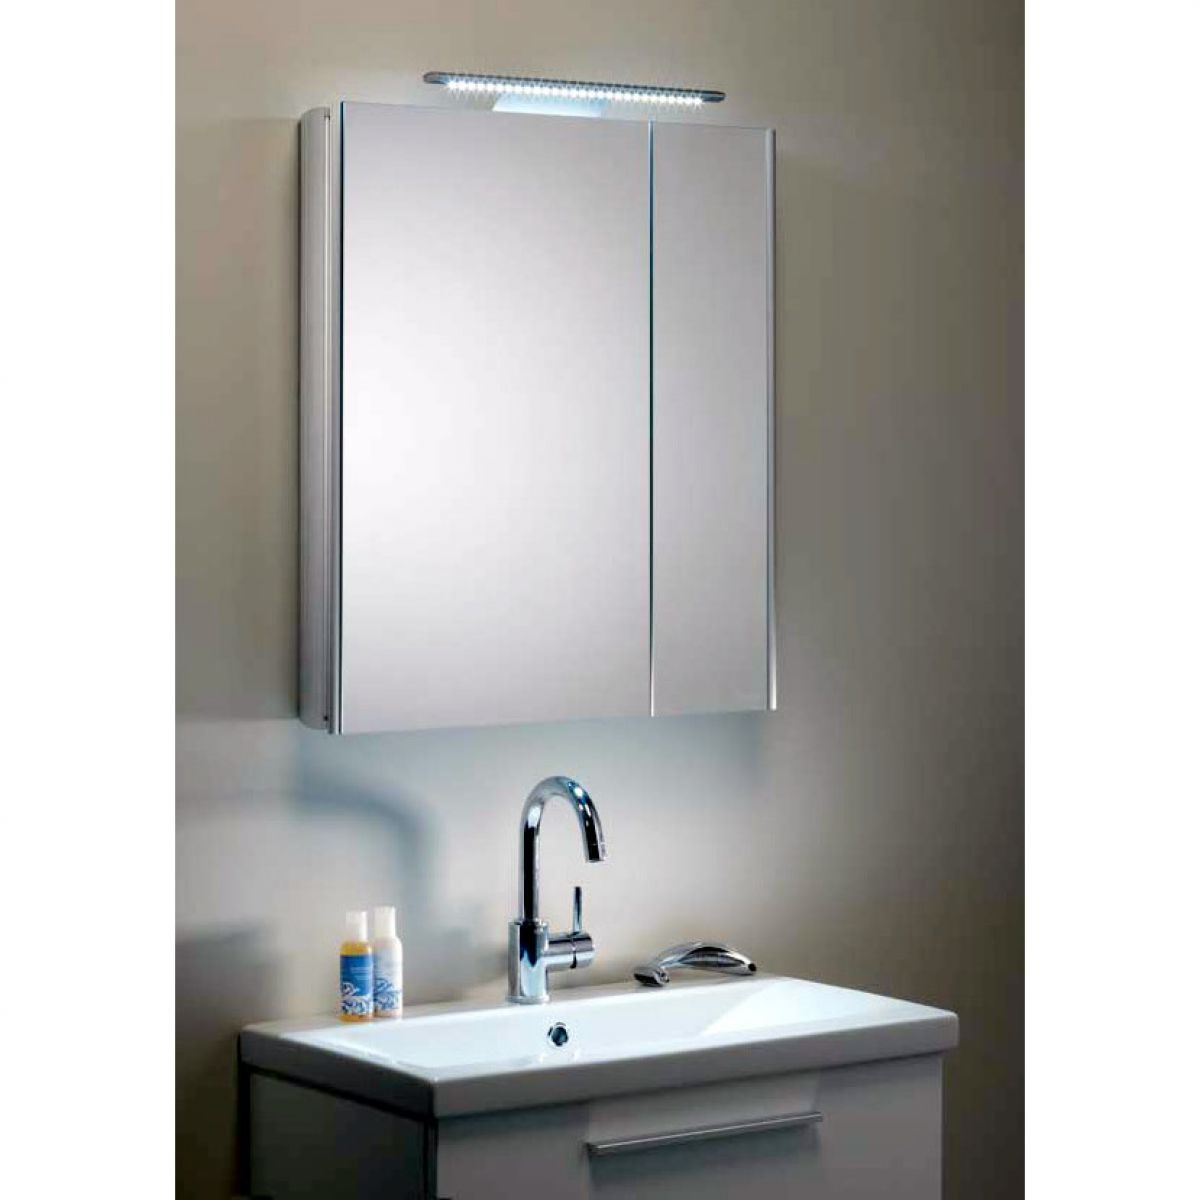 slimline bathroom wall cabinets roper ascension refine slimline split door cabinet 20435